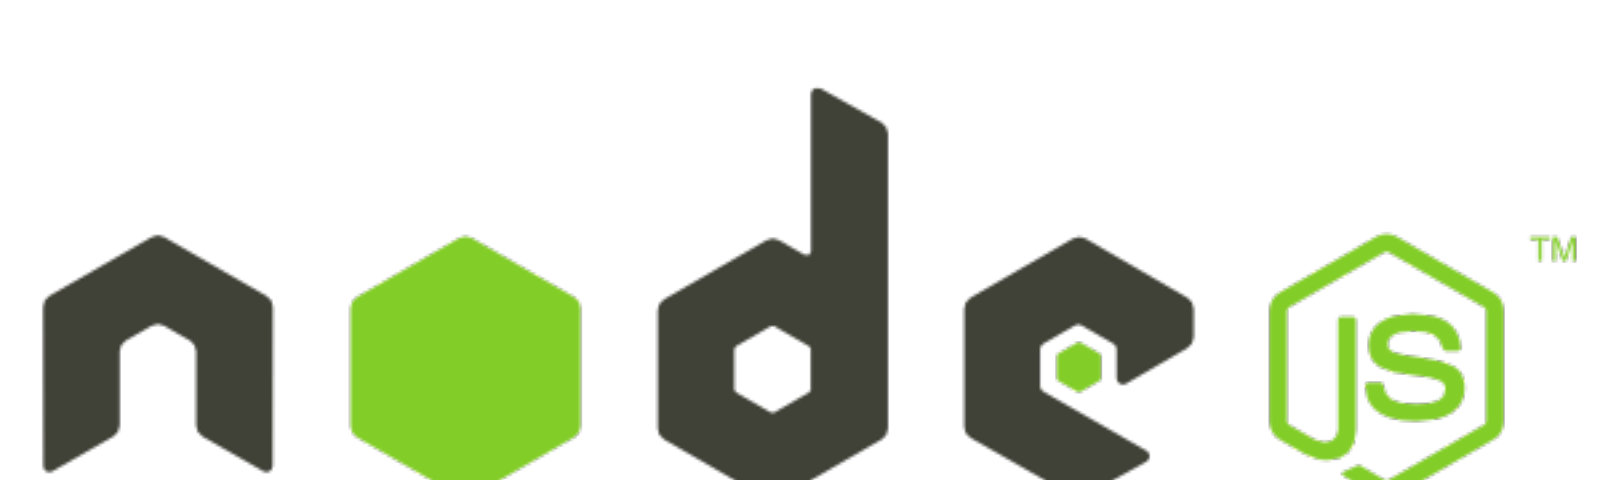 5 วัน กับ NodeJS Hapi - Pranworks Blog - Medium